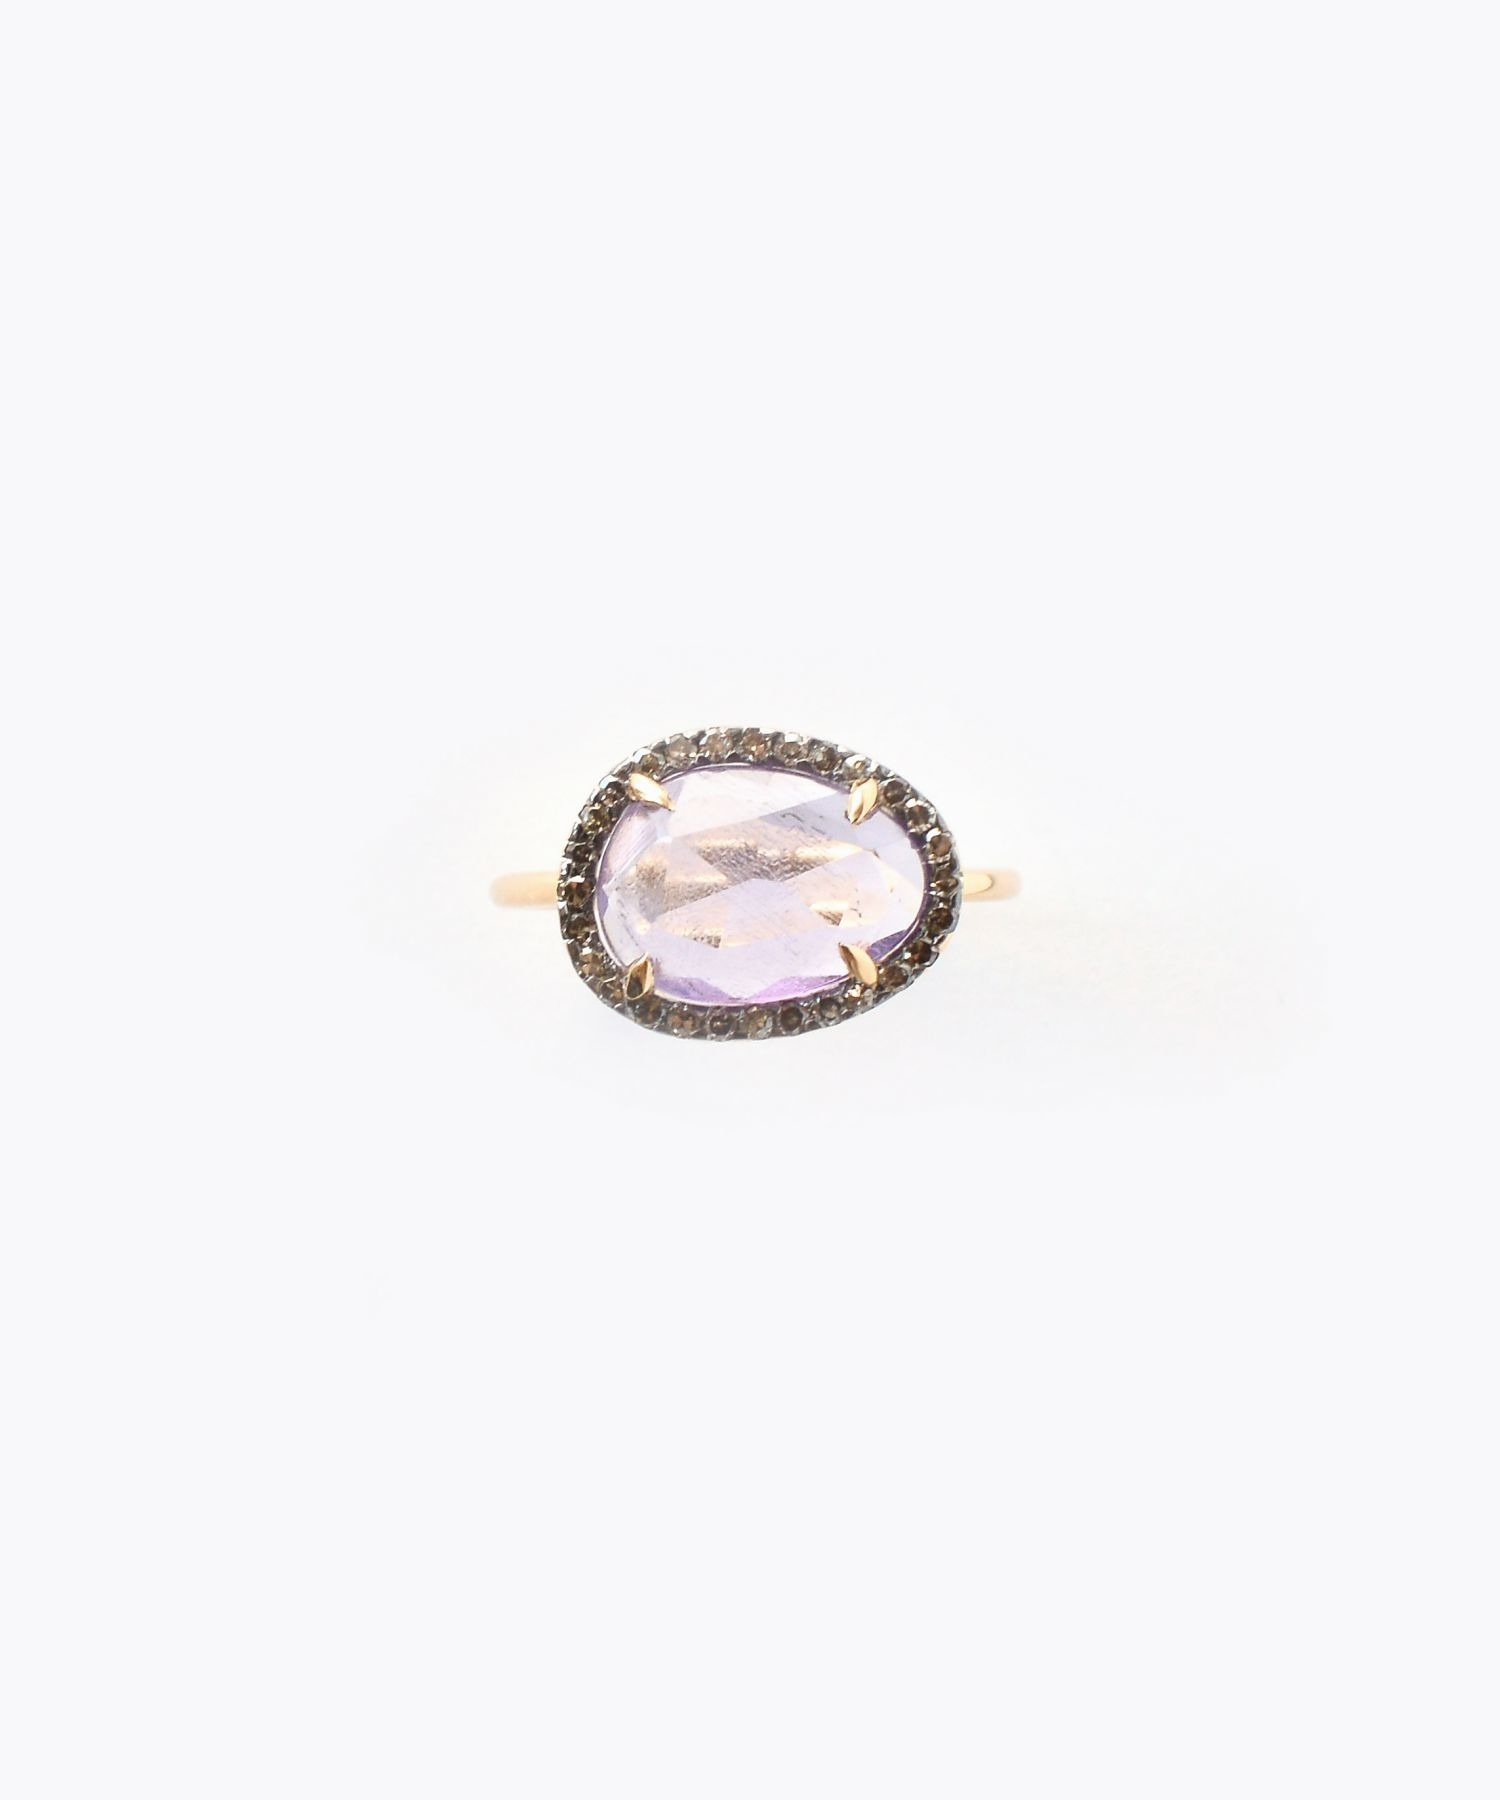 [elafonisi] medium amethyst with pave diamonds ring